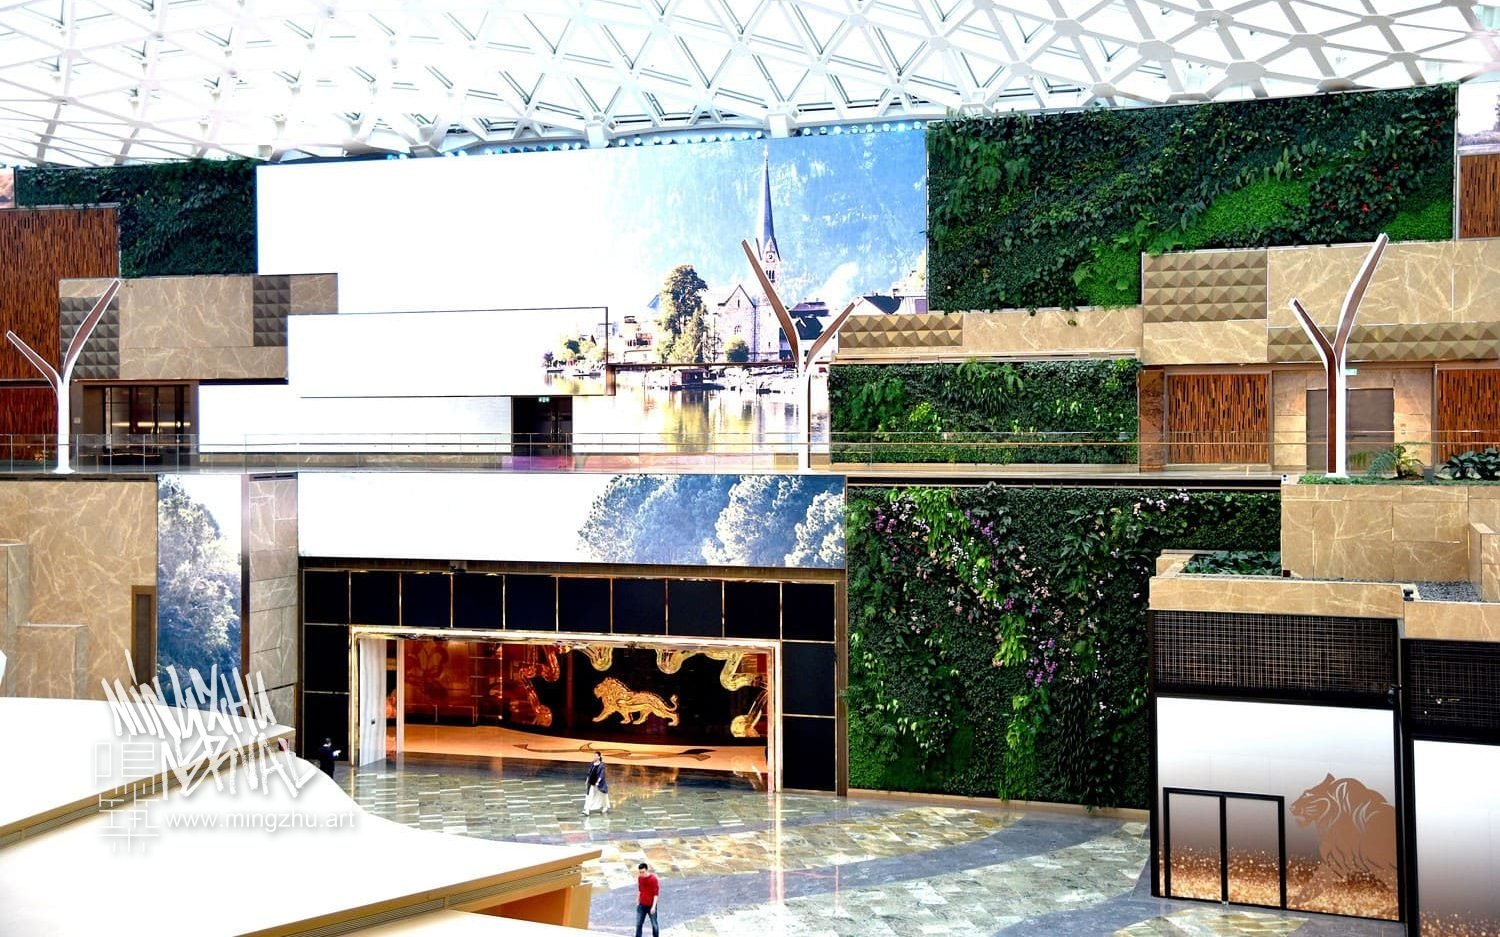 Mingzhu Nerval vertical living wall experts created the best garden design art at the Nature's Art MGM Cotai in Macao, 2018